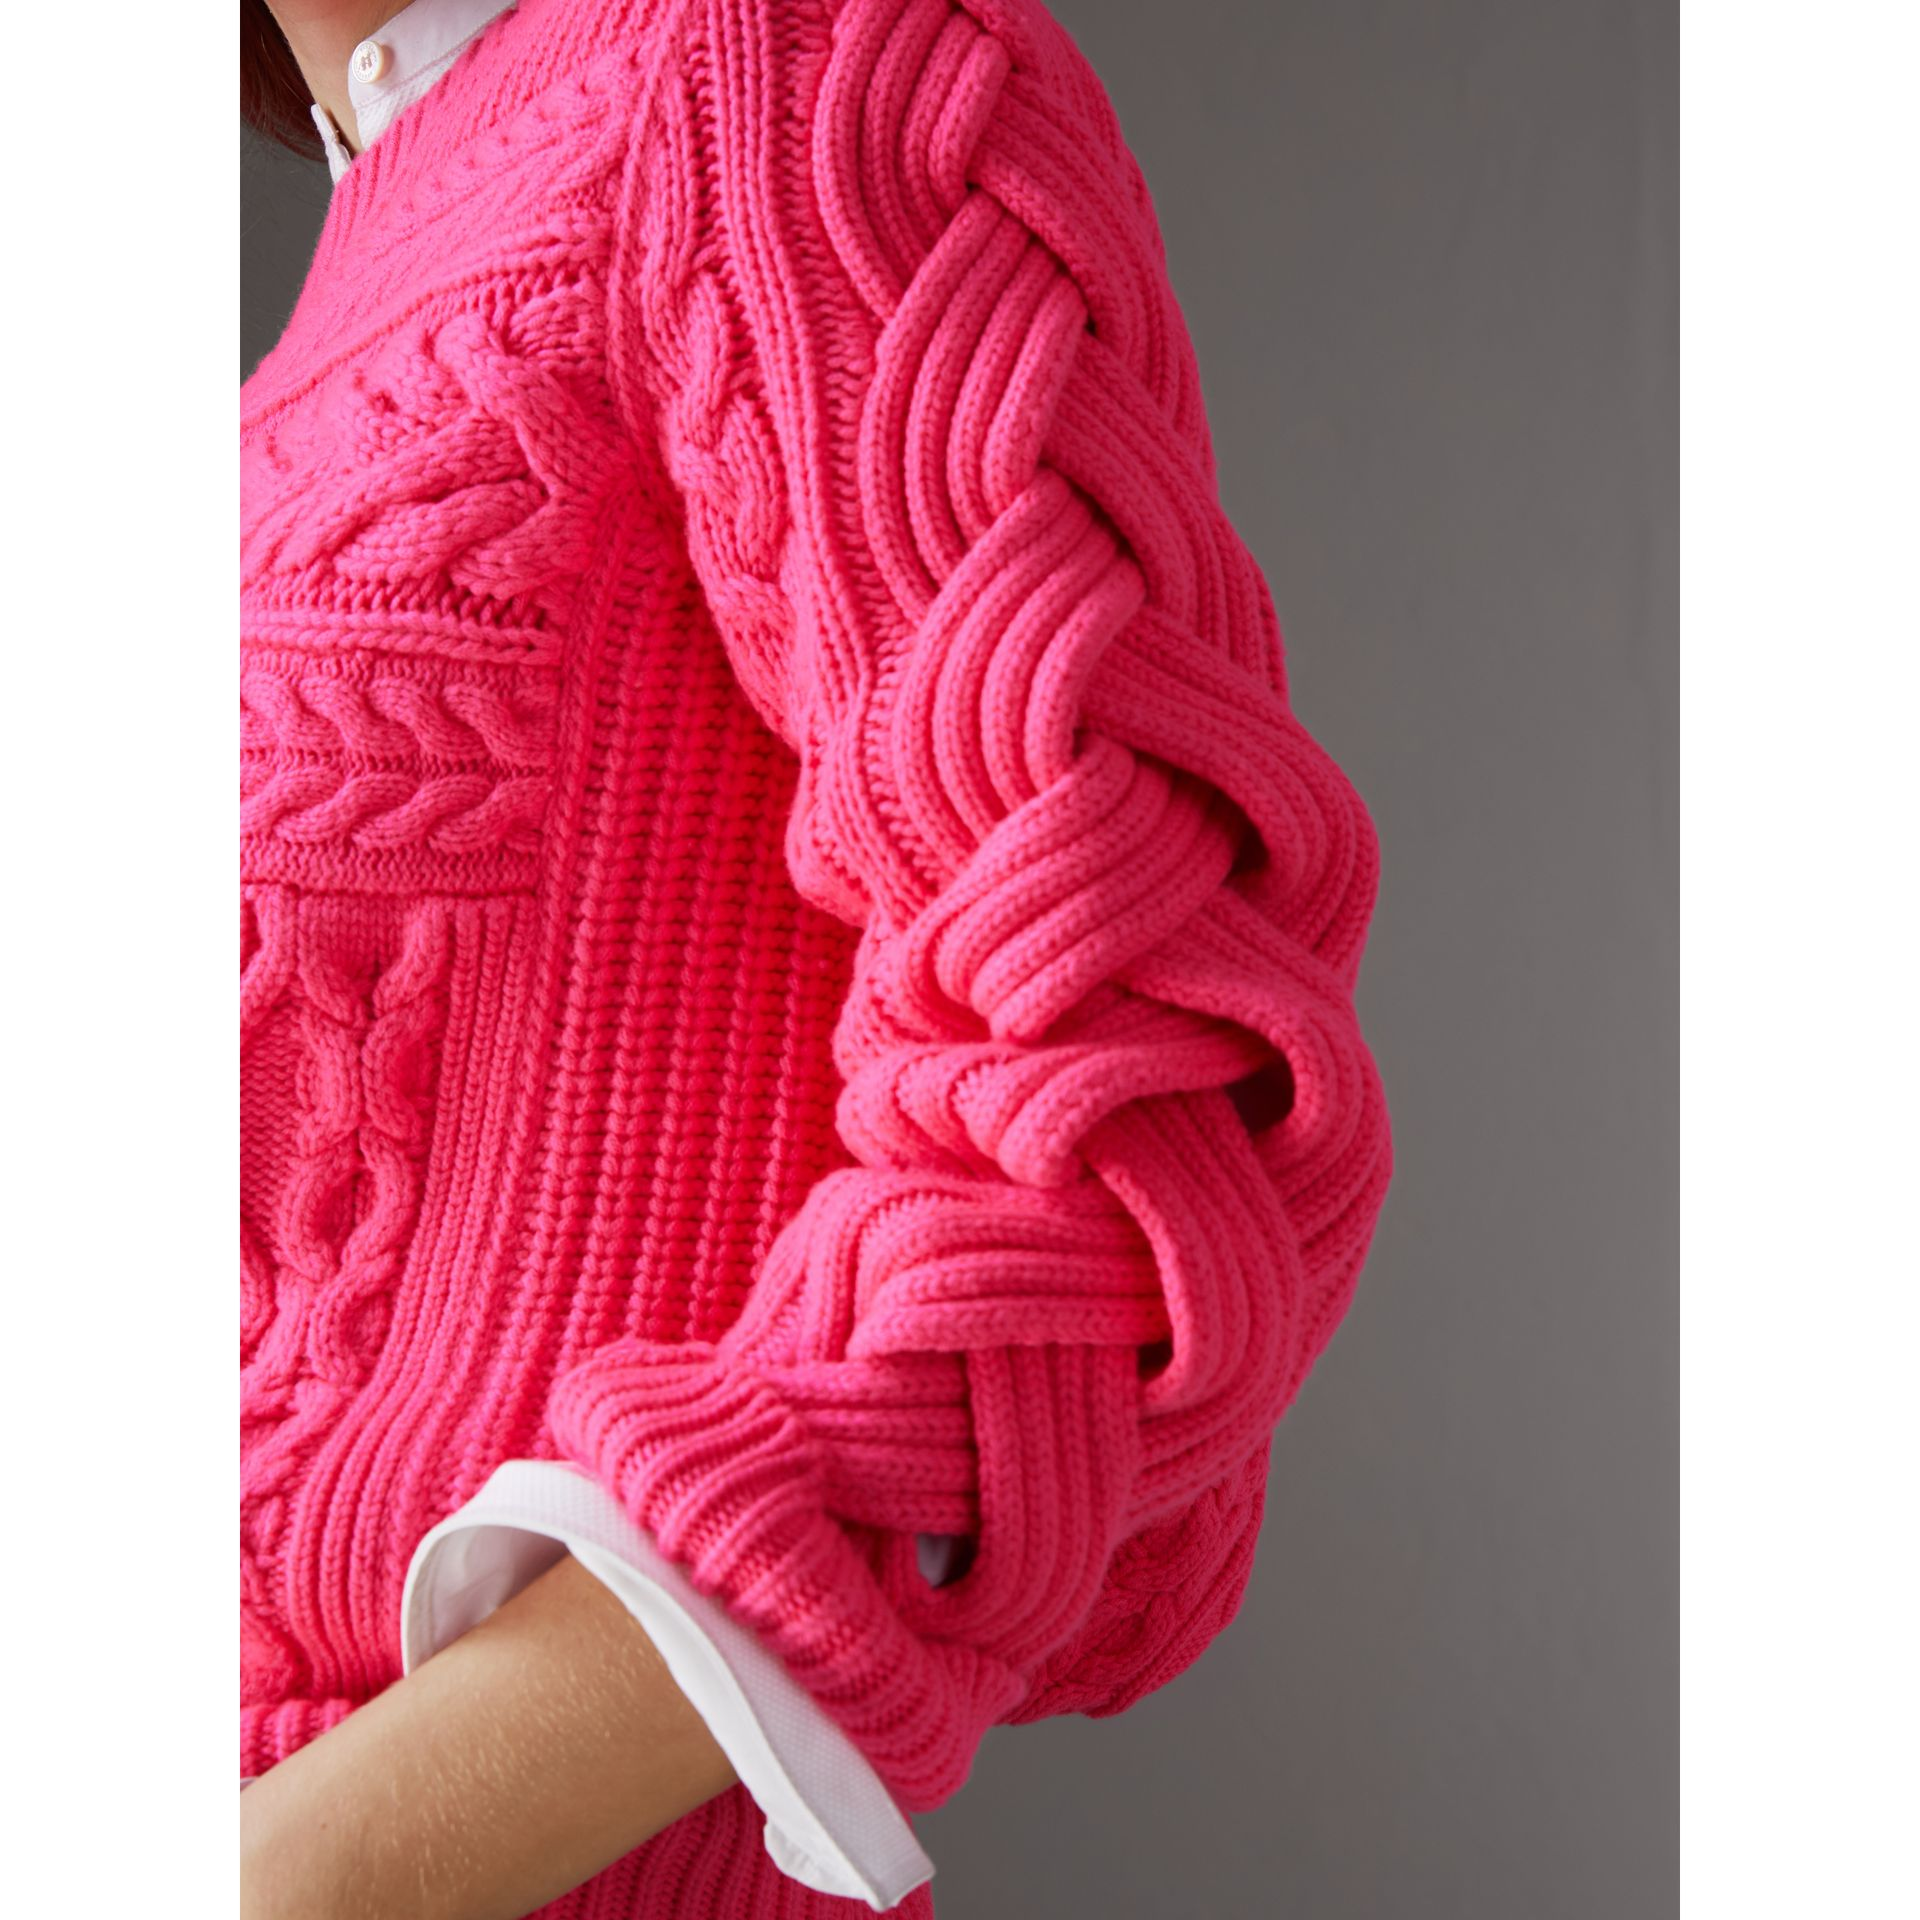 Aran Knit Wool Cashmere Sweater in Bright Rose Pink - Women | Burberry Singapore - gallery image 1